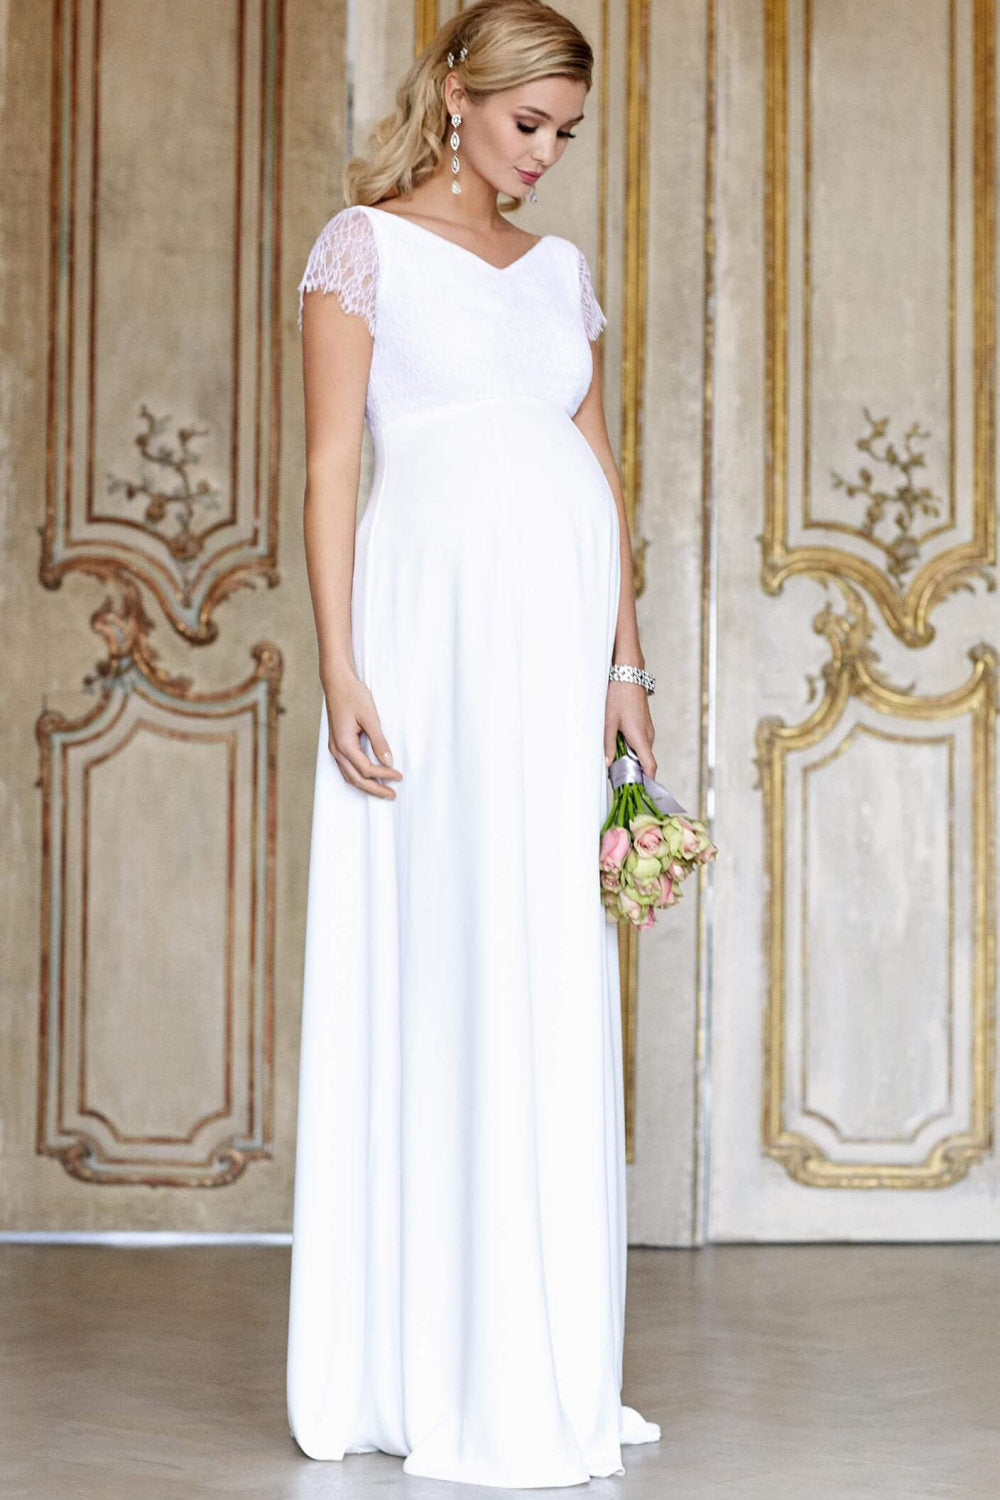 Tiffany Rose Eleanor Gown - Ivory